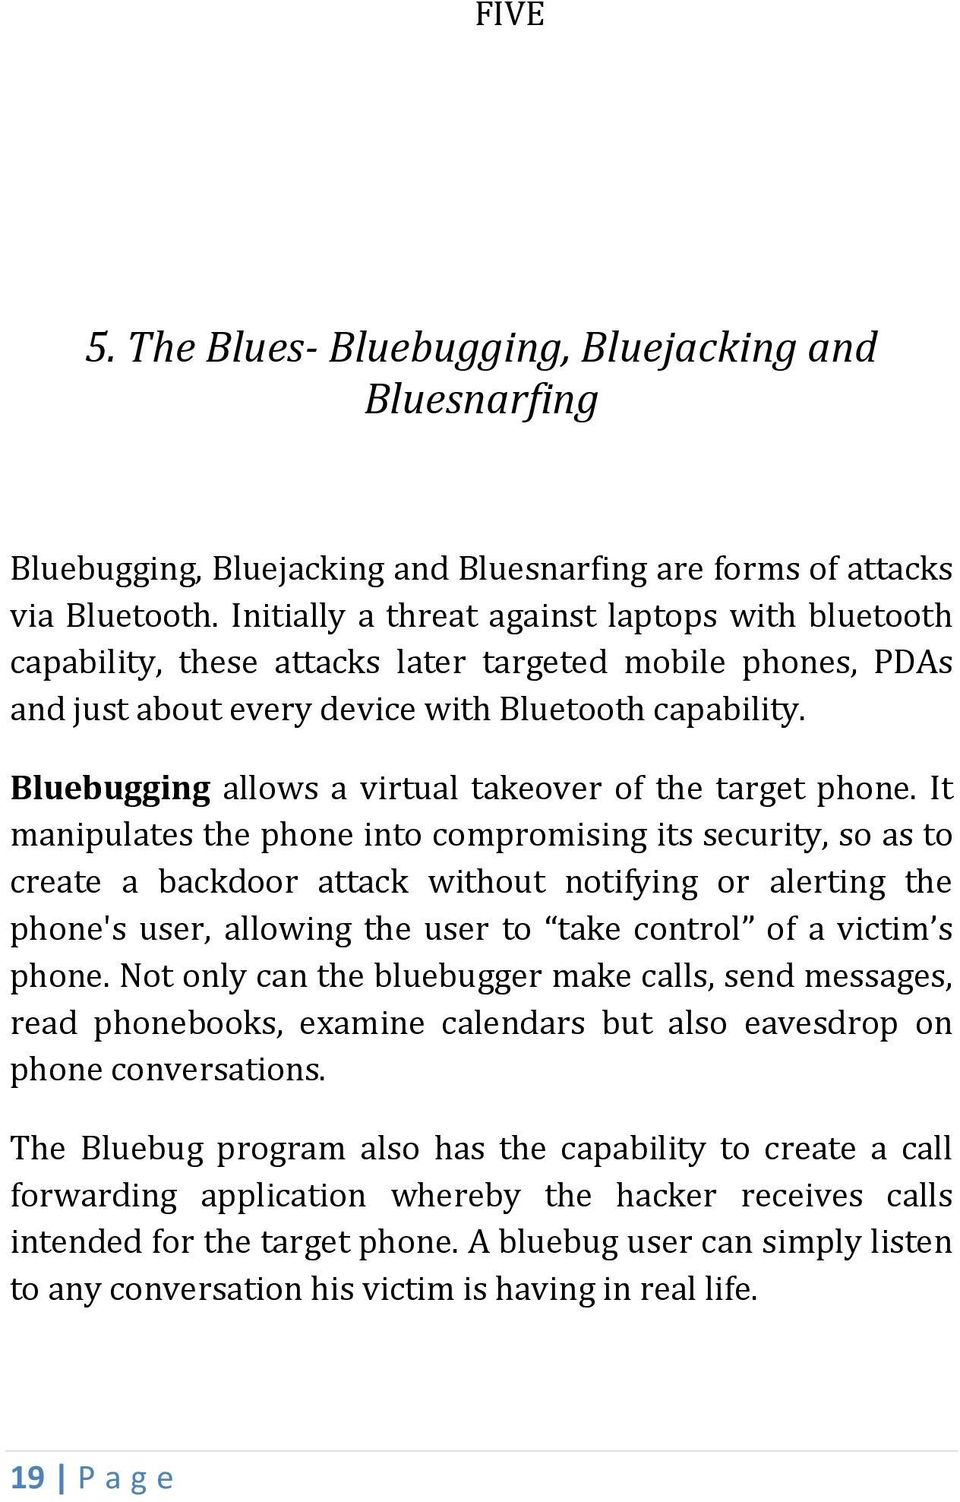 Bluebugging allows a virtual takeover of the target phone.